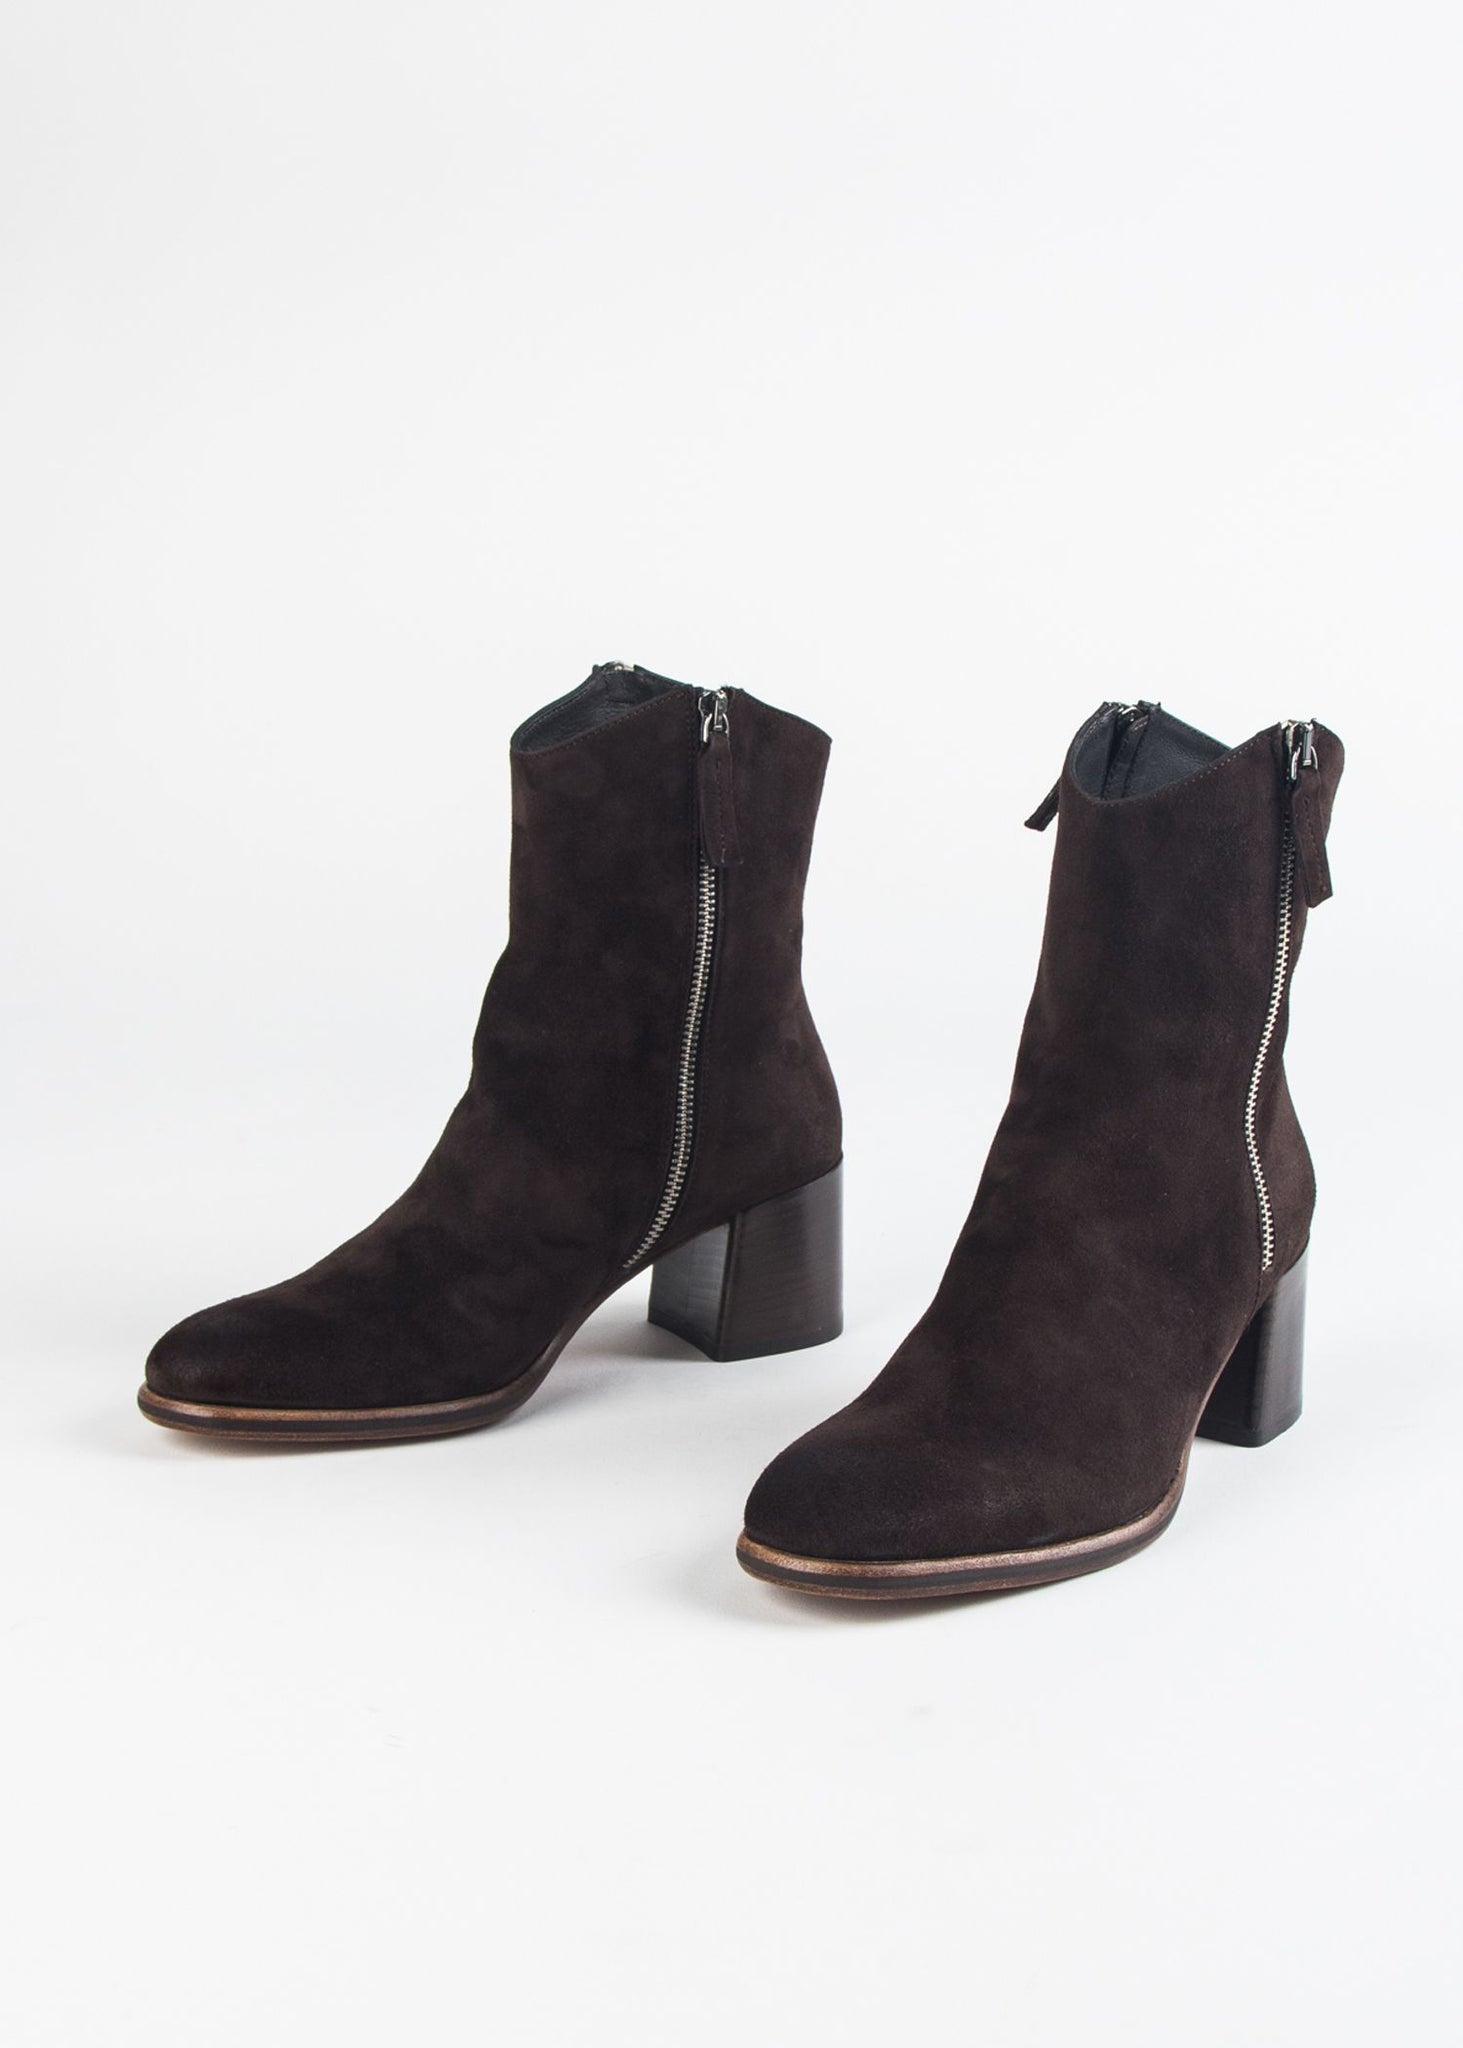 DUAL ZIPPER SUEDE BOOT